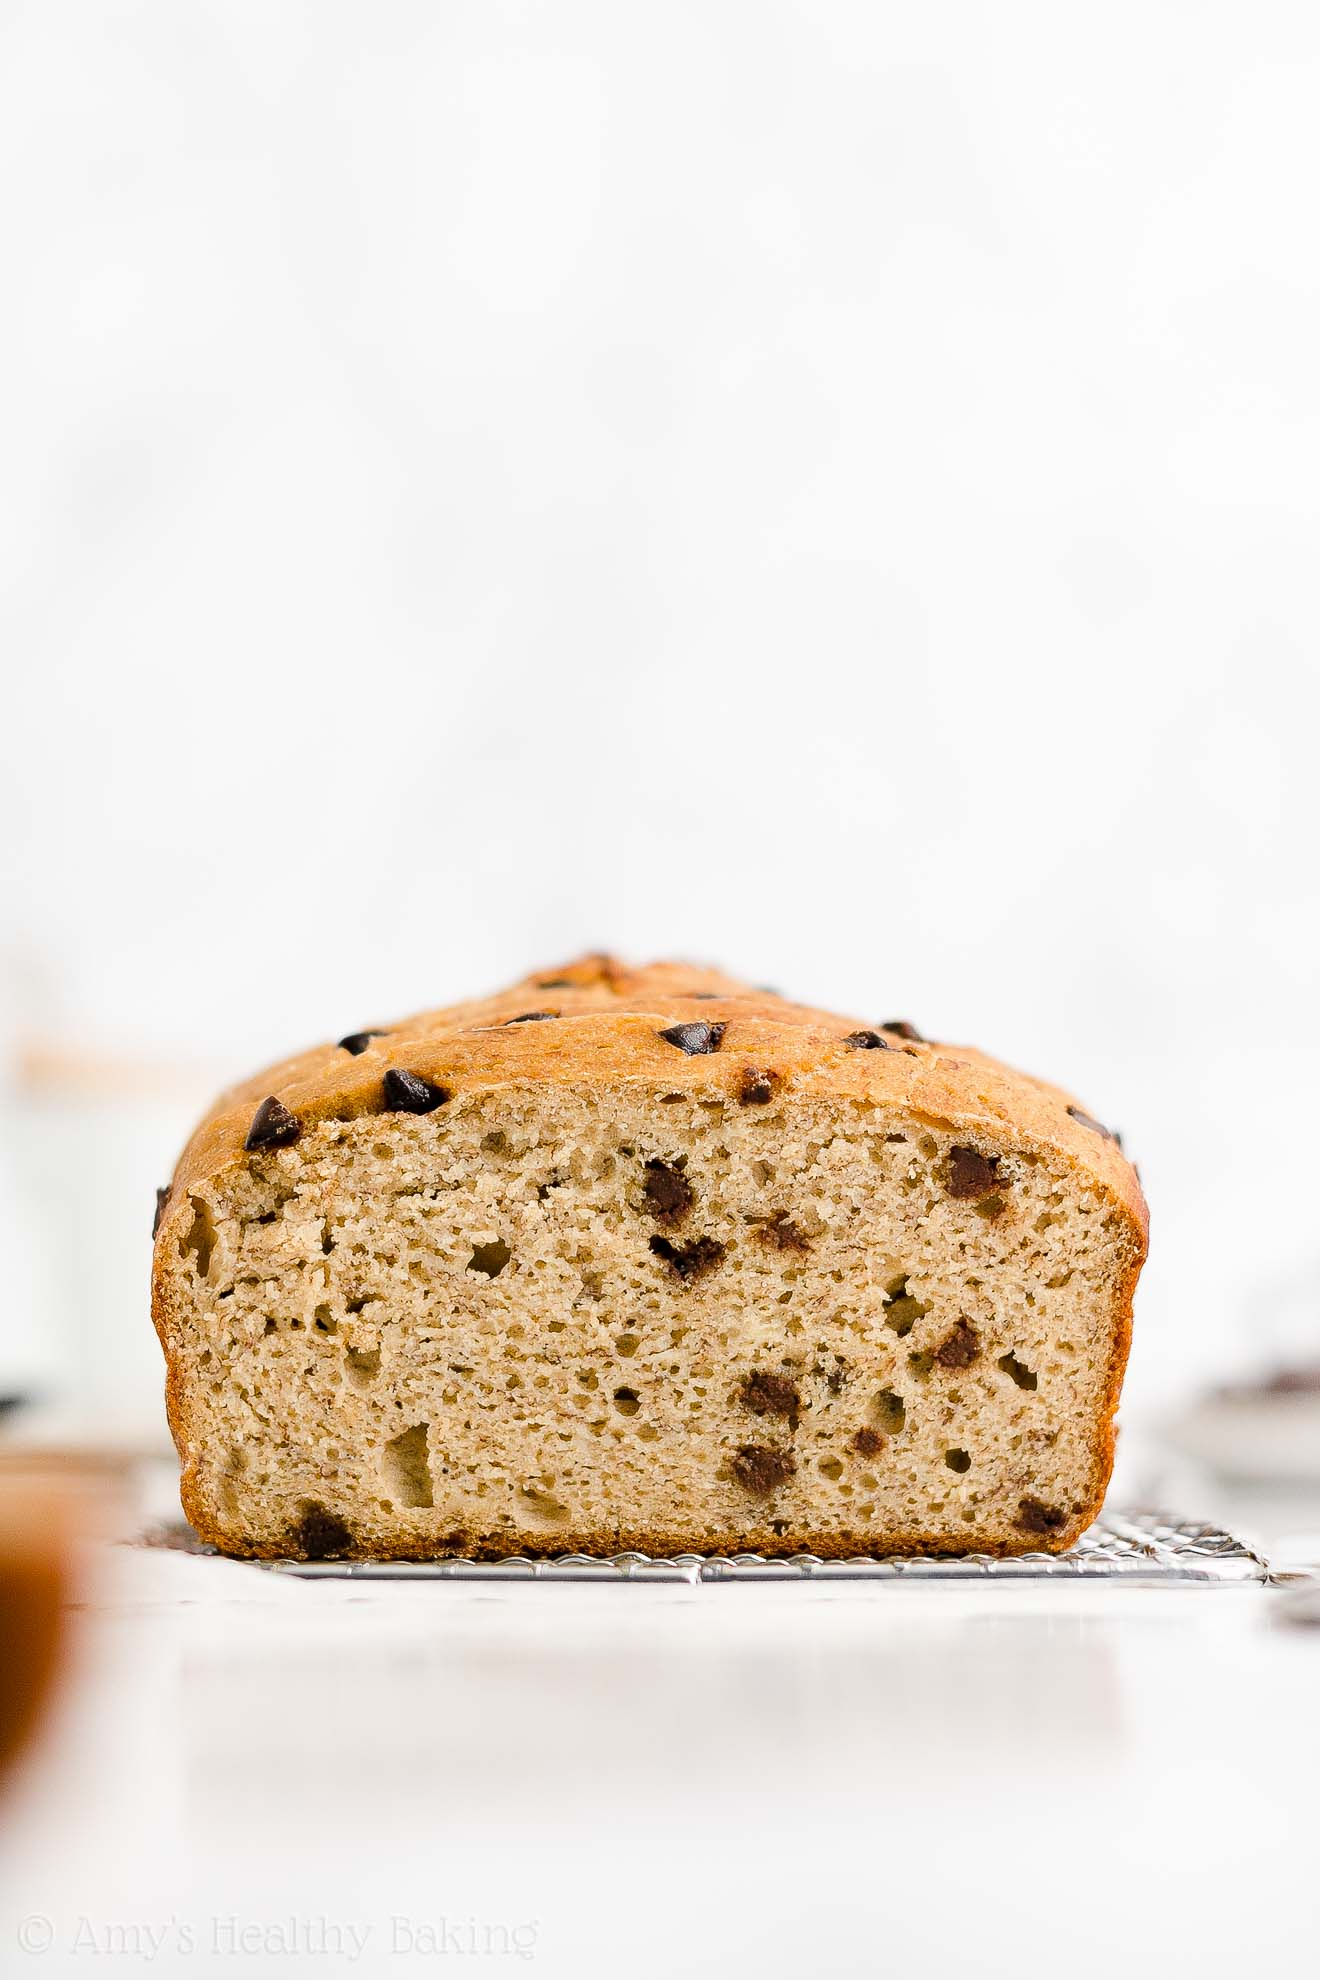 Best Easy Healthy Whole Wheat Low Sugar Moist Chocolate Chip Banana Bread